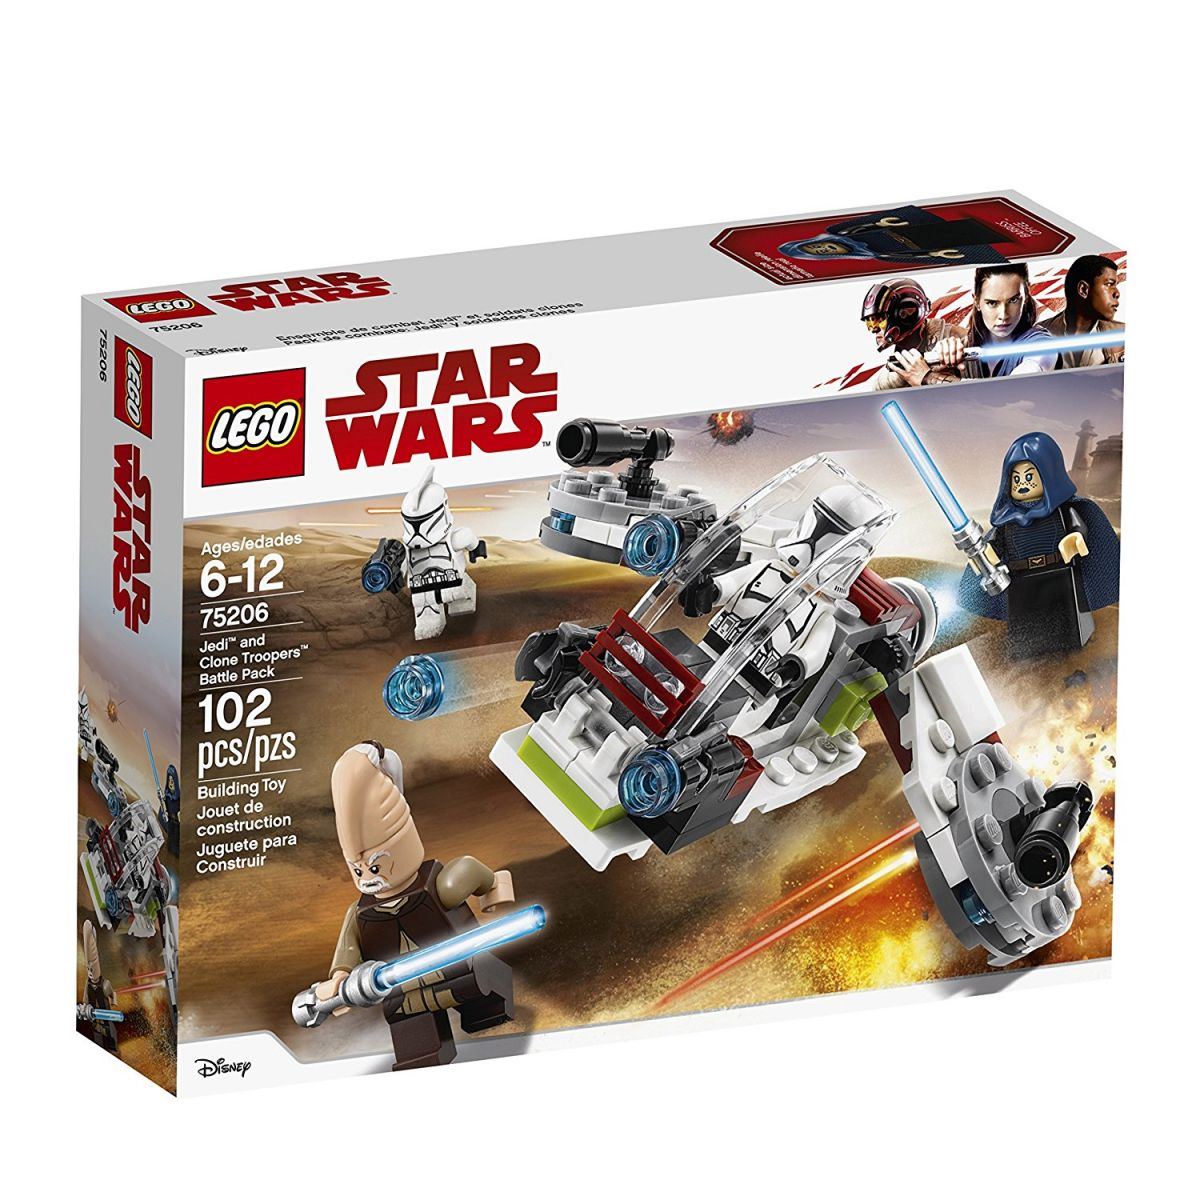 Official Images For New Han Solo Lego Star Wars Sets